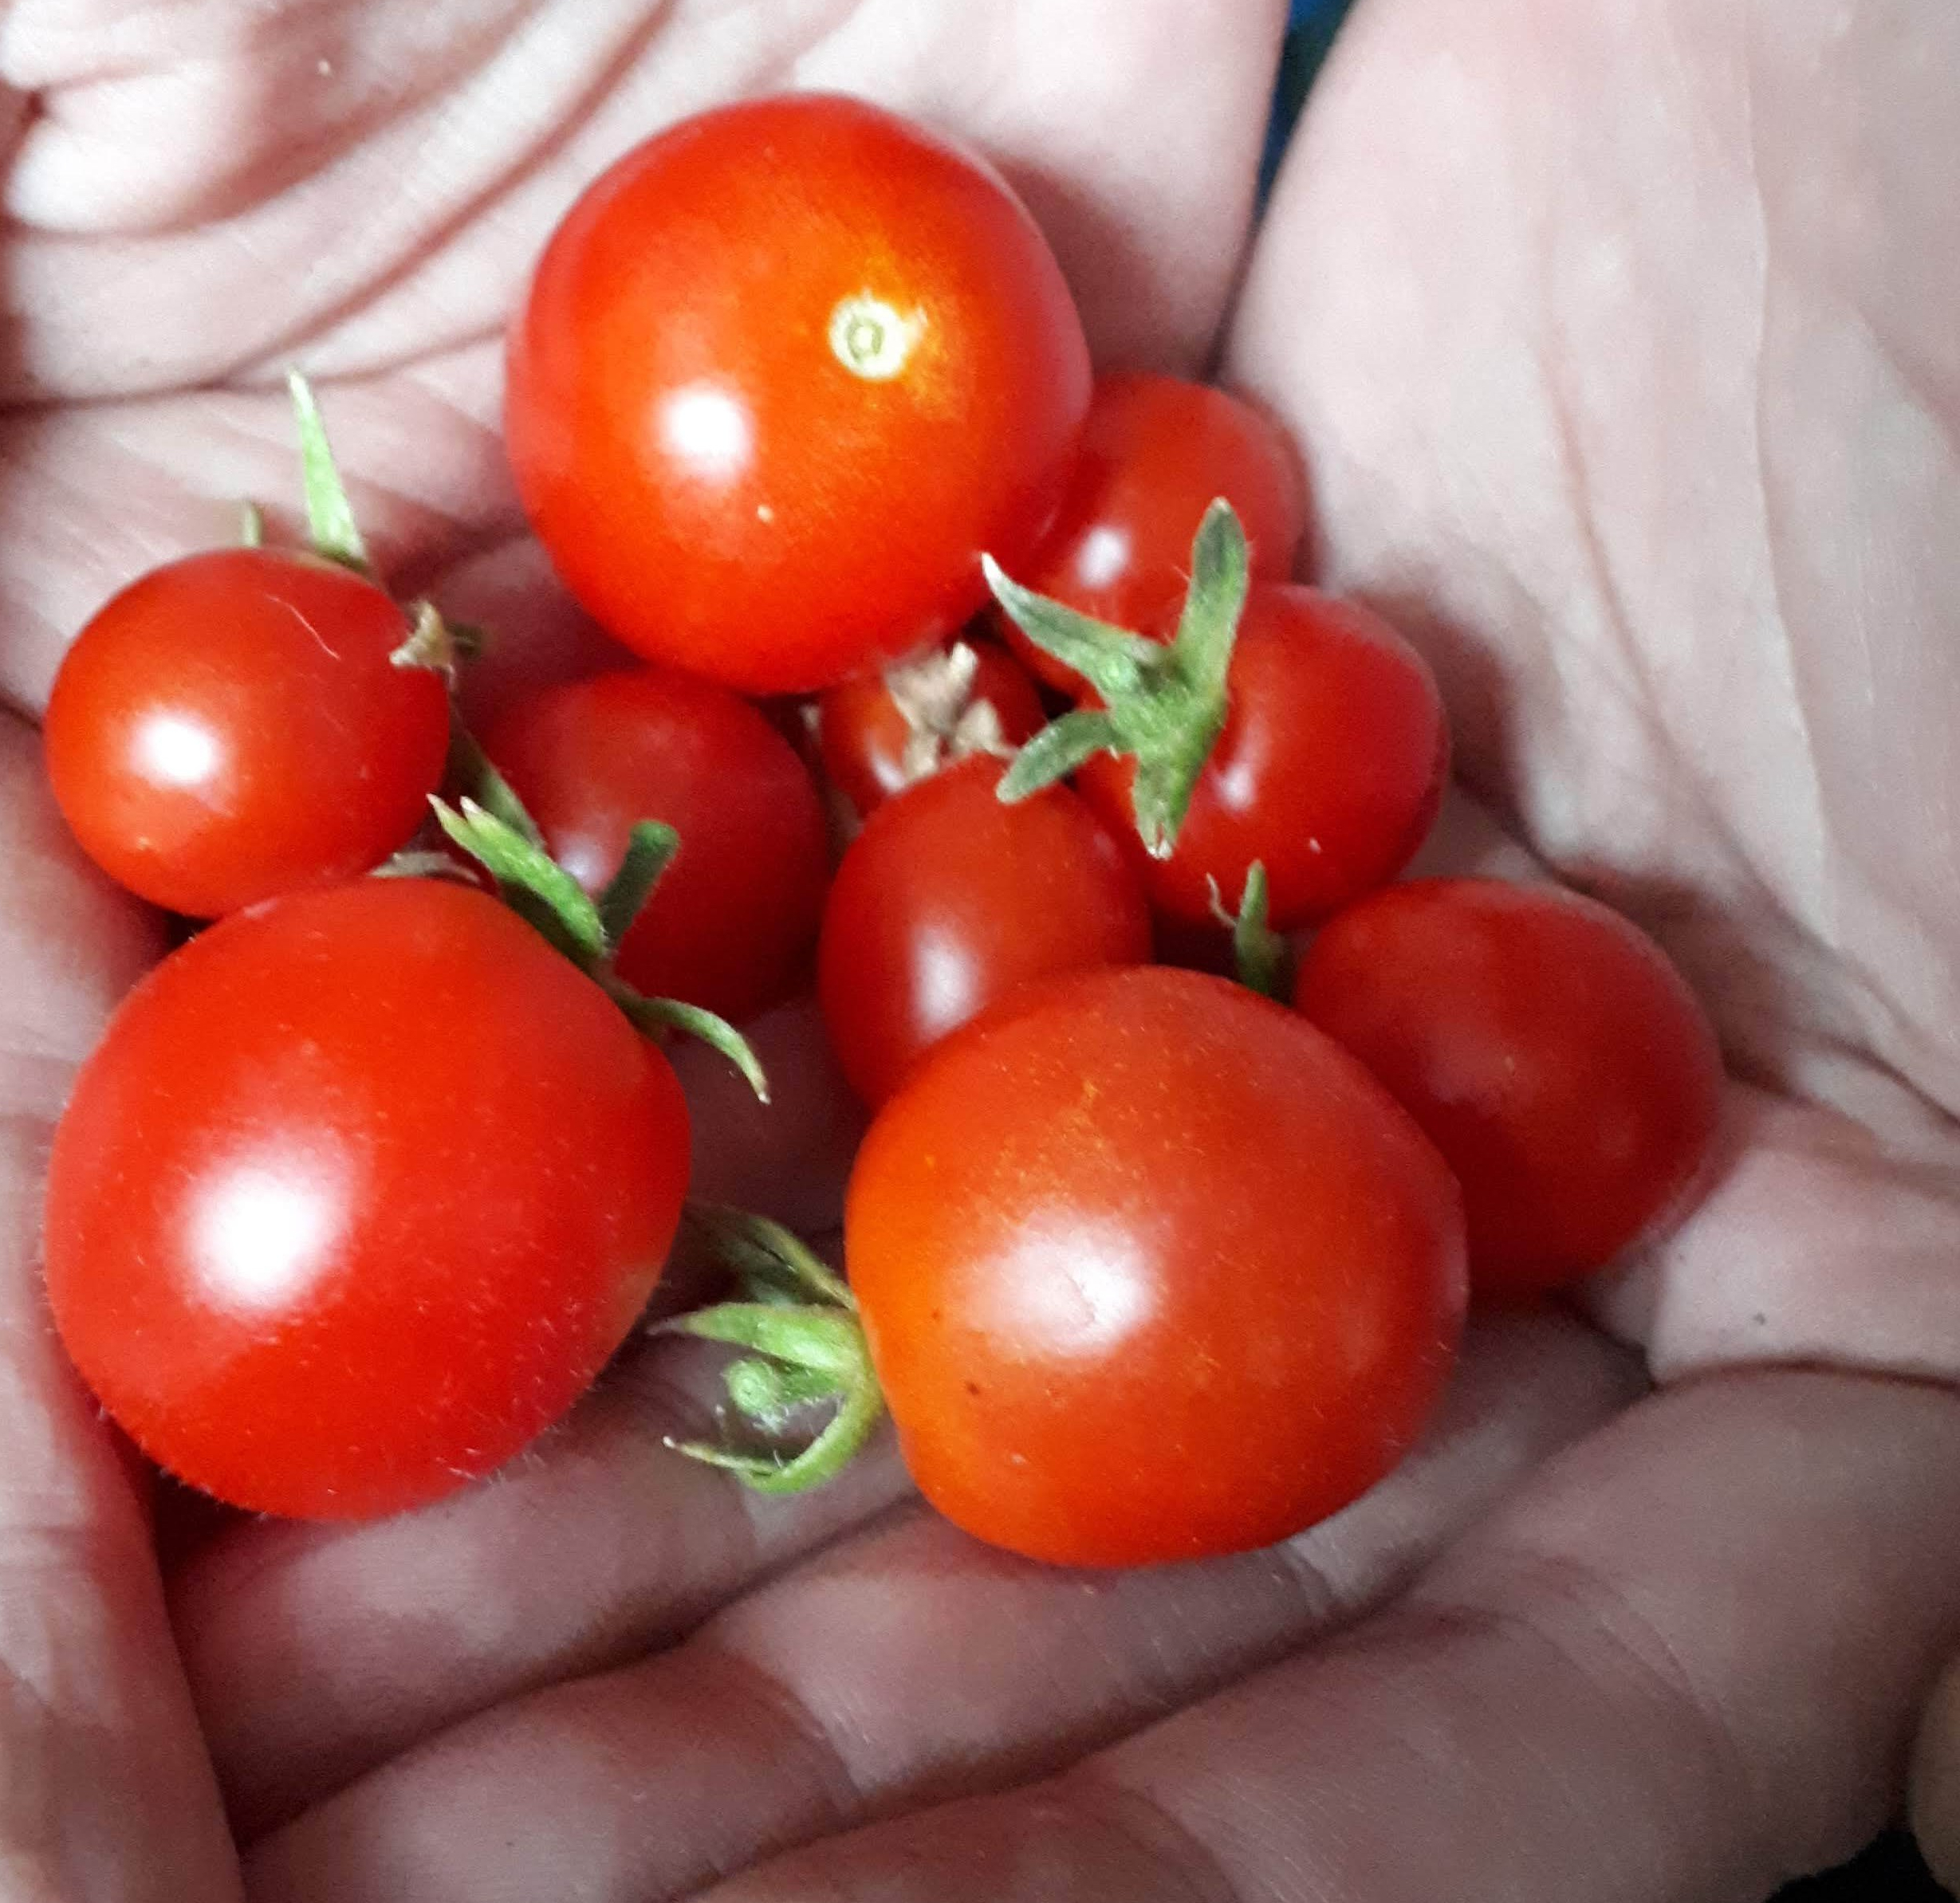 Six on Saturday: Gardeners can't grow tomatoes